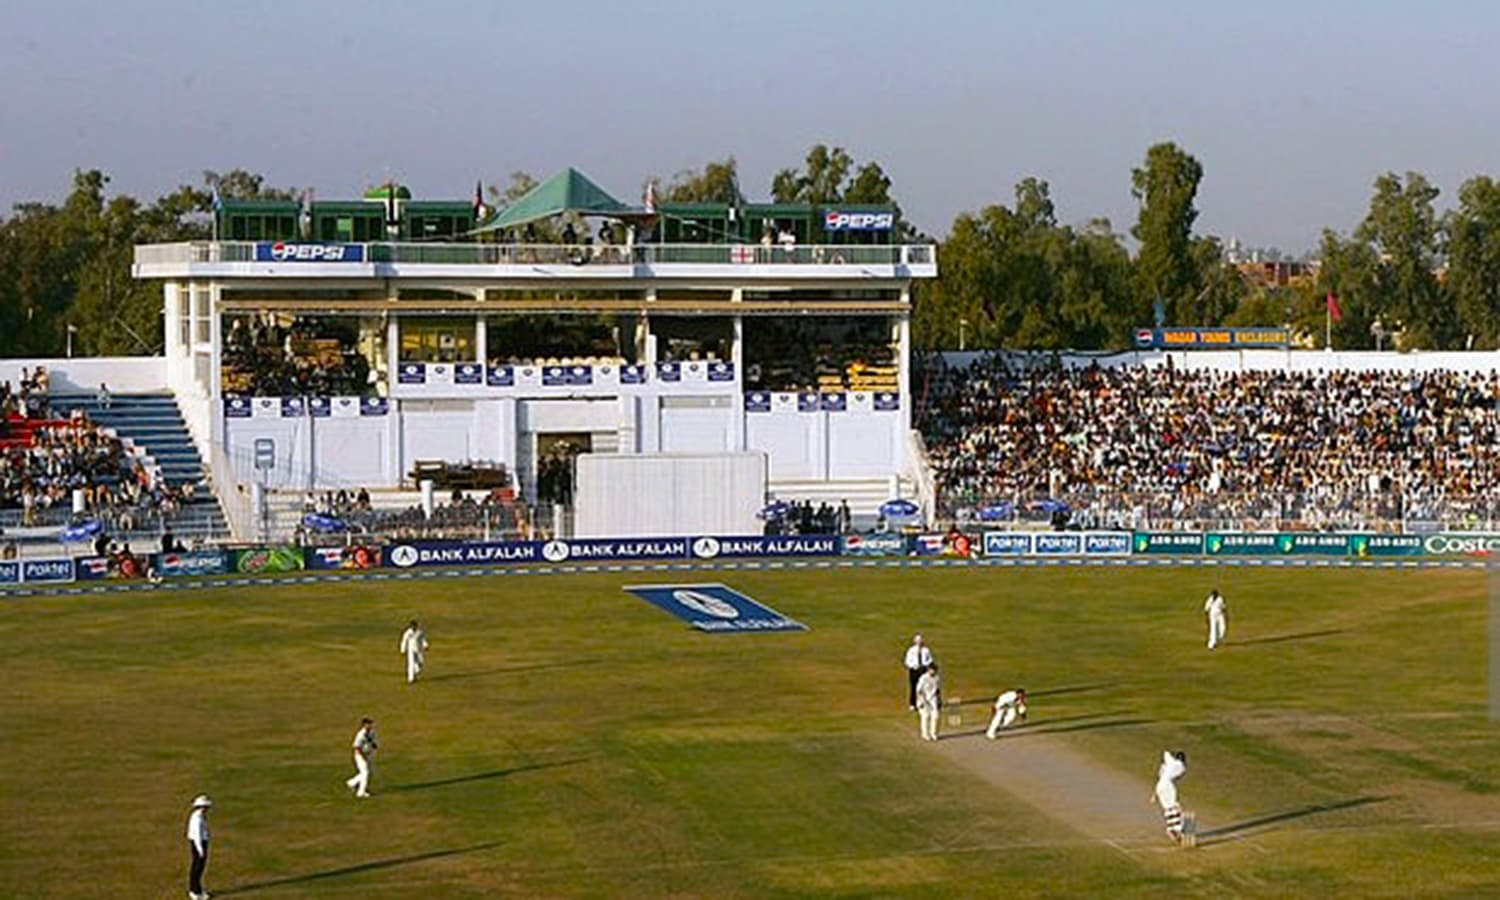 The 2005 Test between Pakistan and England at Iqbal Stadium. (Pic: Stu Foster)